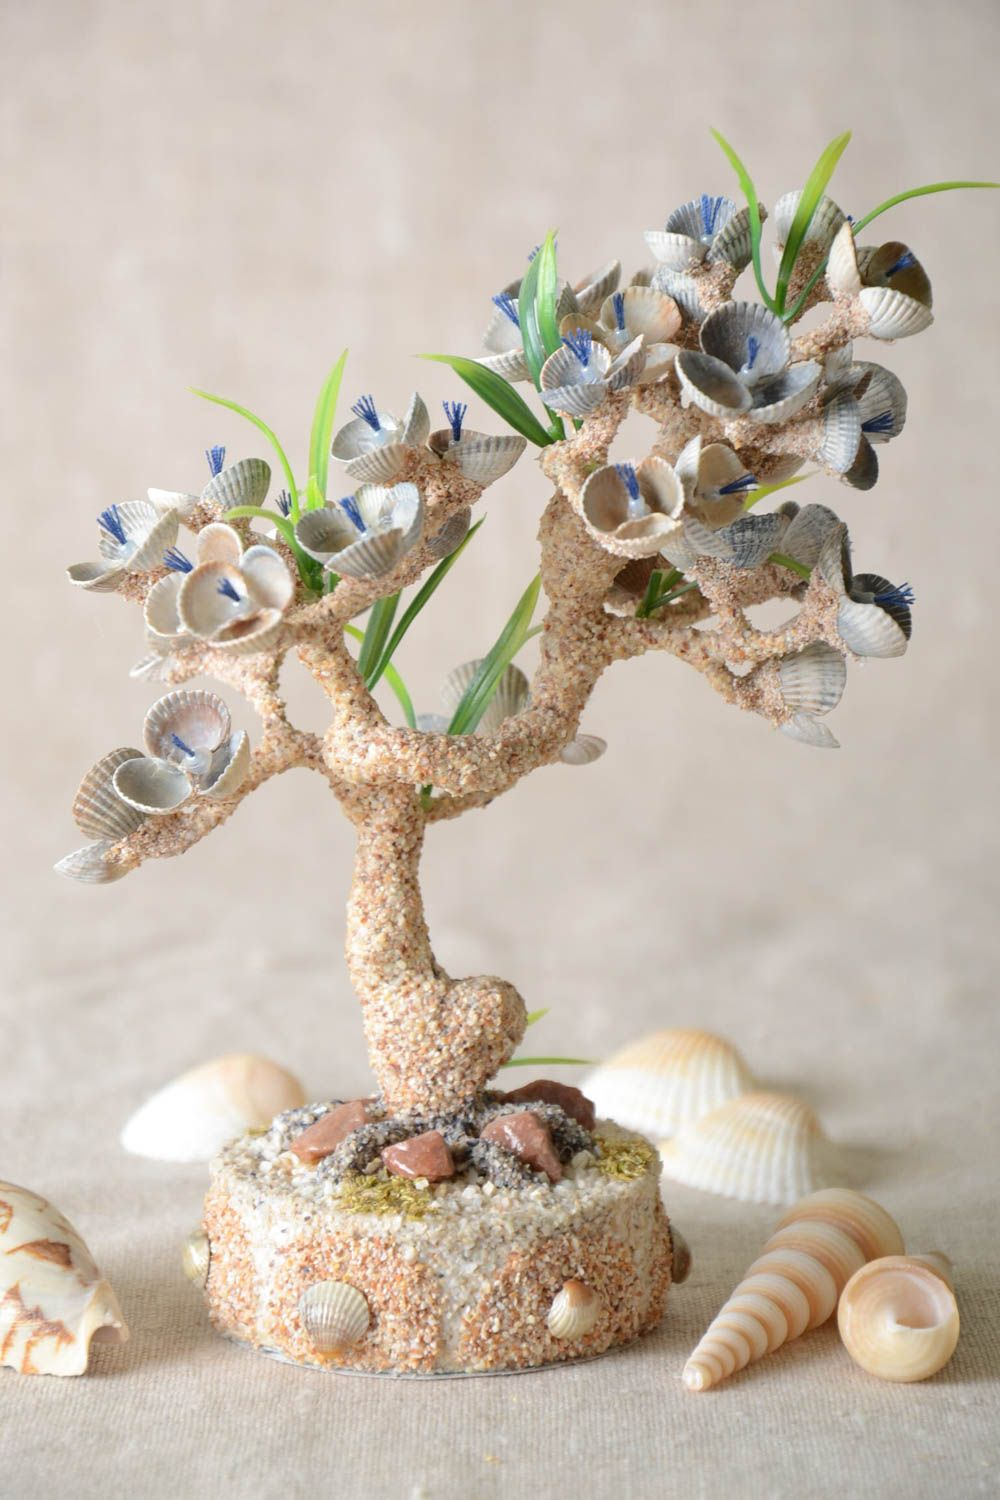 Handmade tree decoration tree composition with flowers table decor gift ideas photo 1